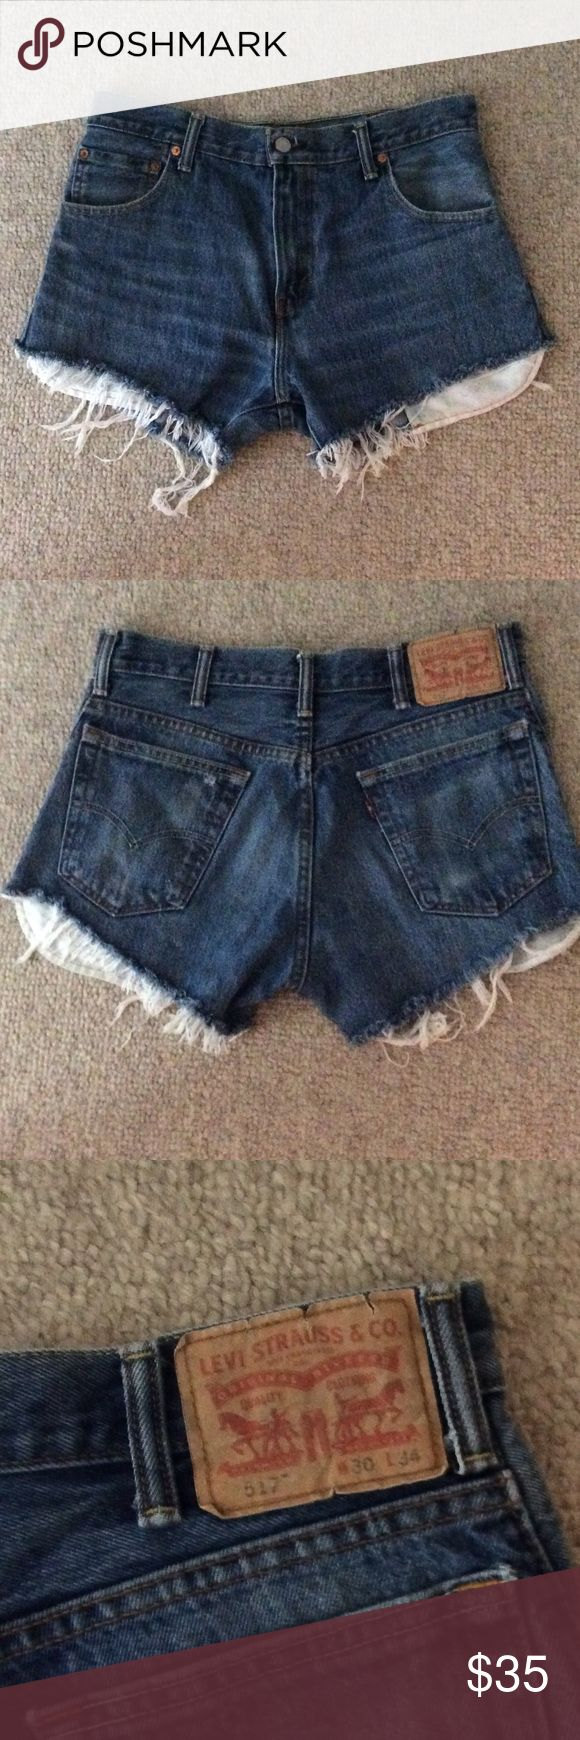 High Waisted Levi's 517 Jean Shorts Never worn frayed edge jean shorts. Size 30 Levi's Shorts Jean Shorts